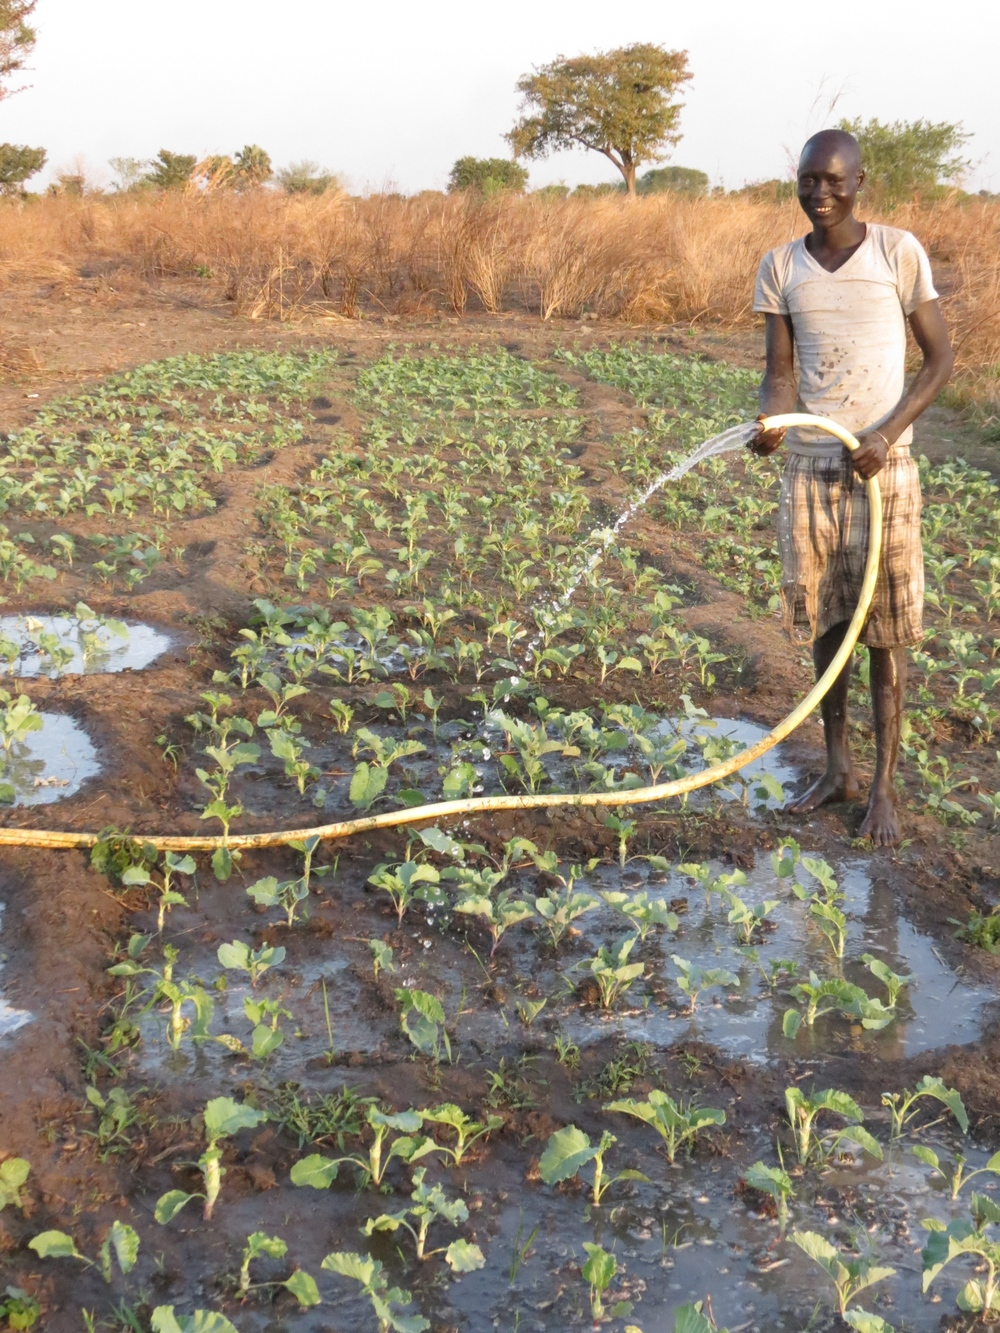 Watering a garden in wau, with water from a wfss well.